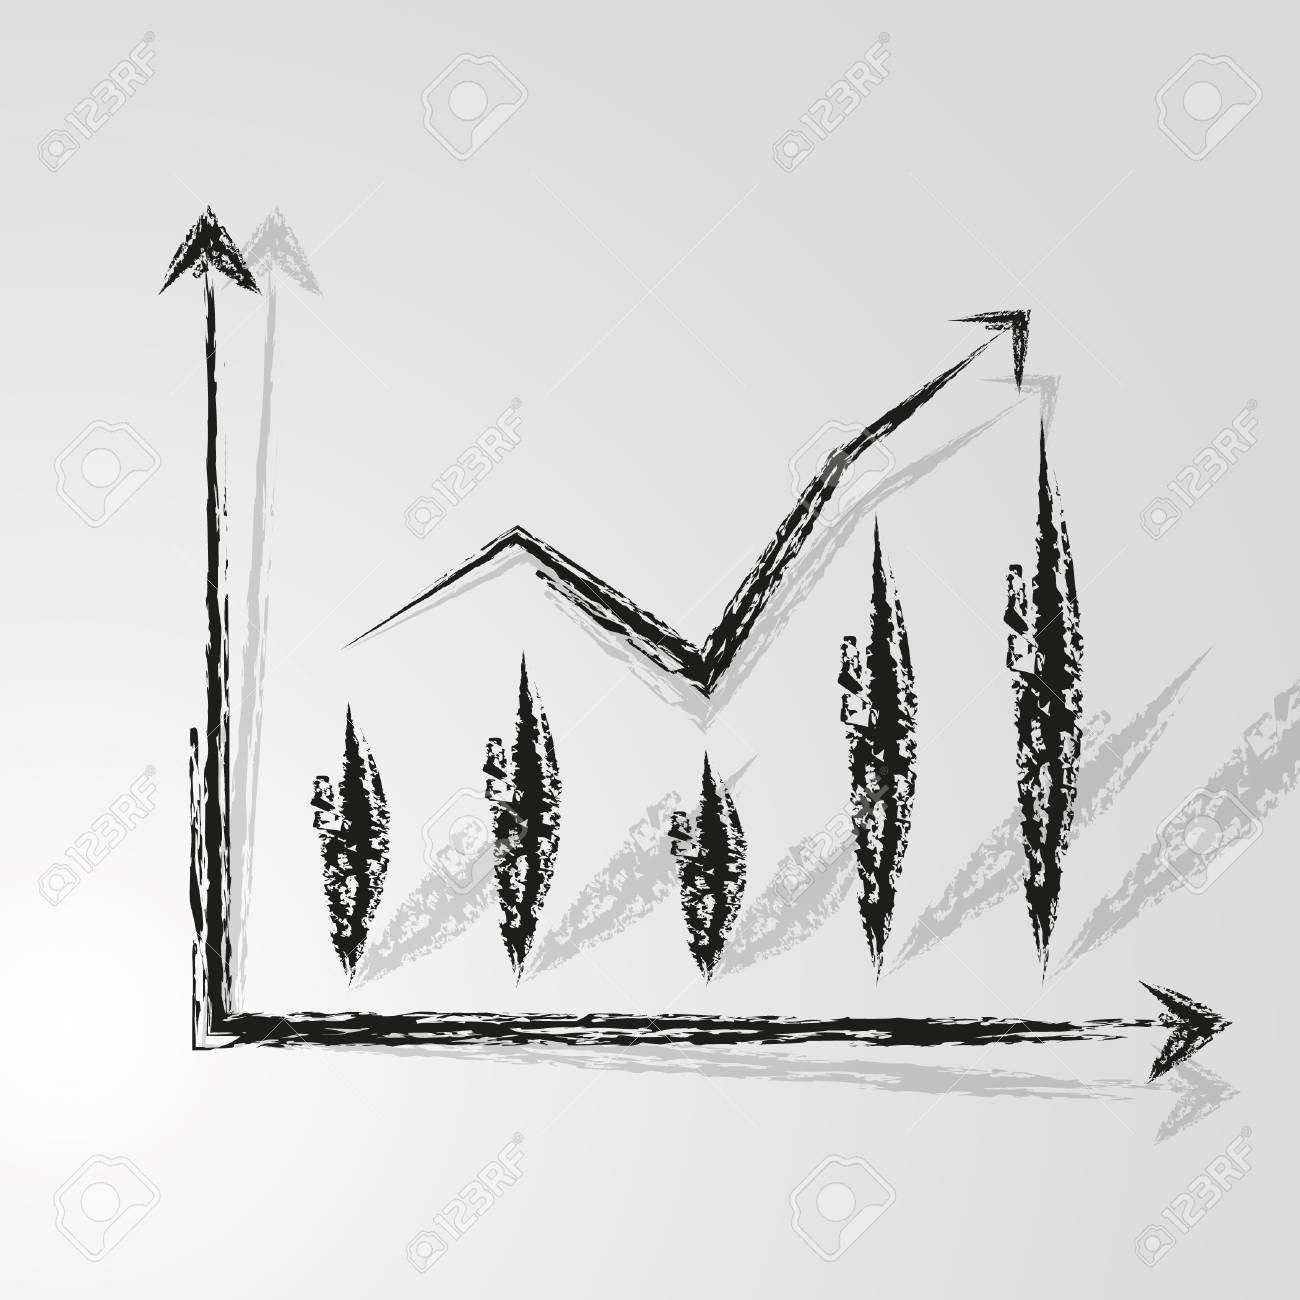 Good  target prospects graph. Stock Vector - 11651053